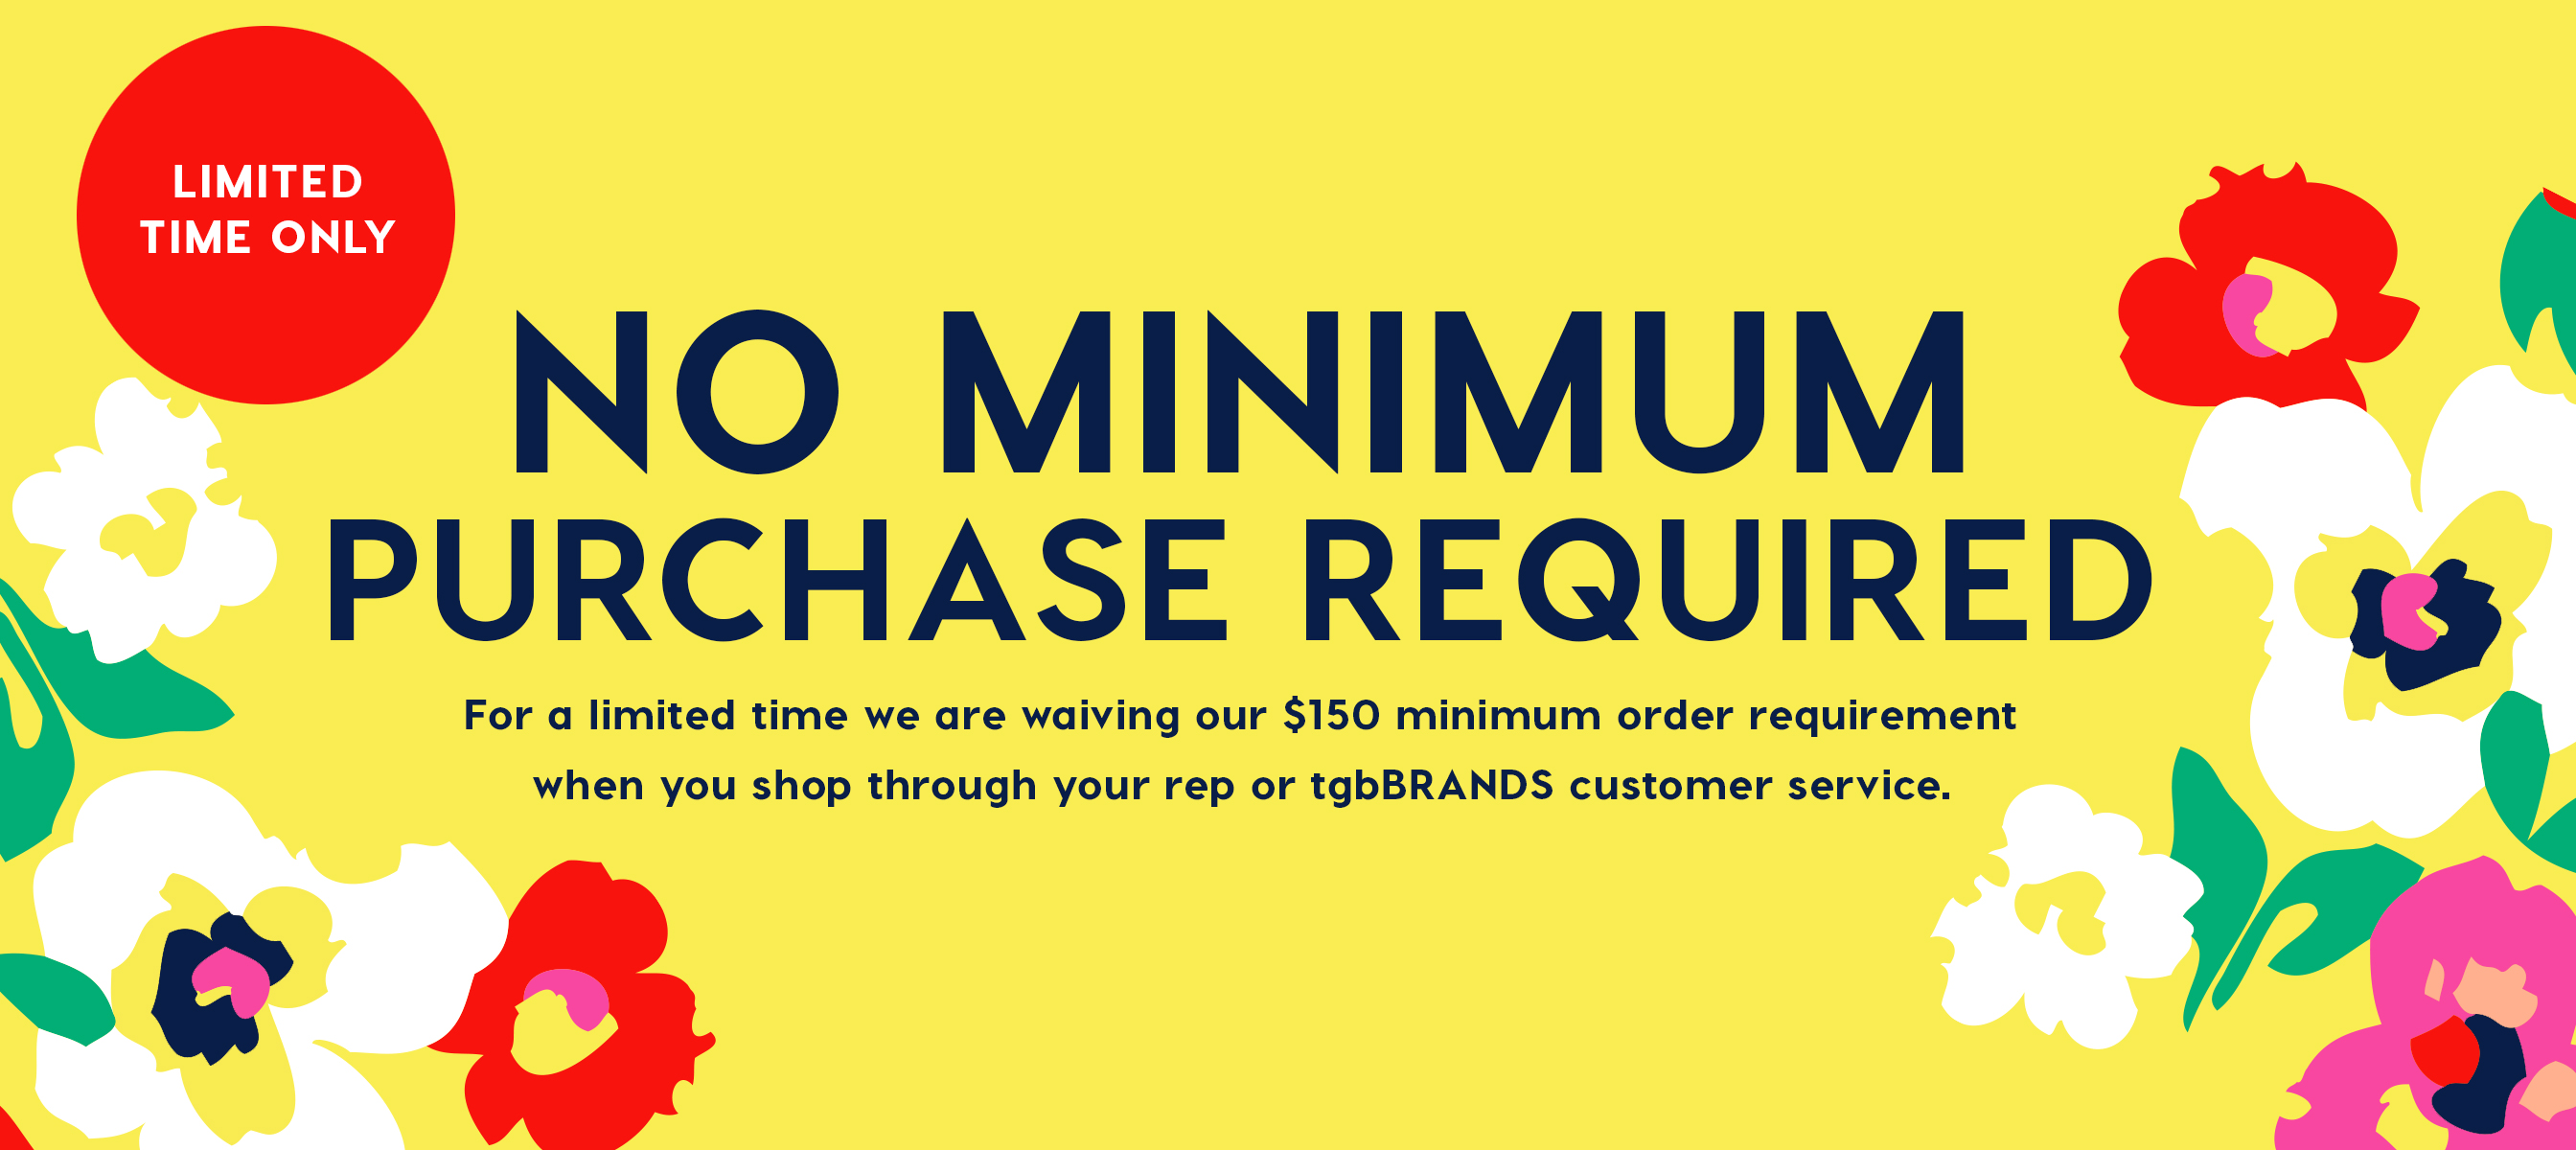 Limited Time - No Order Minimum